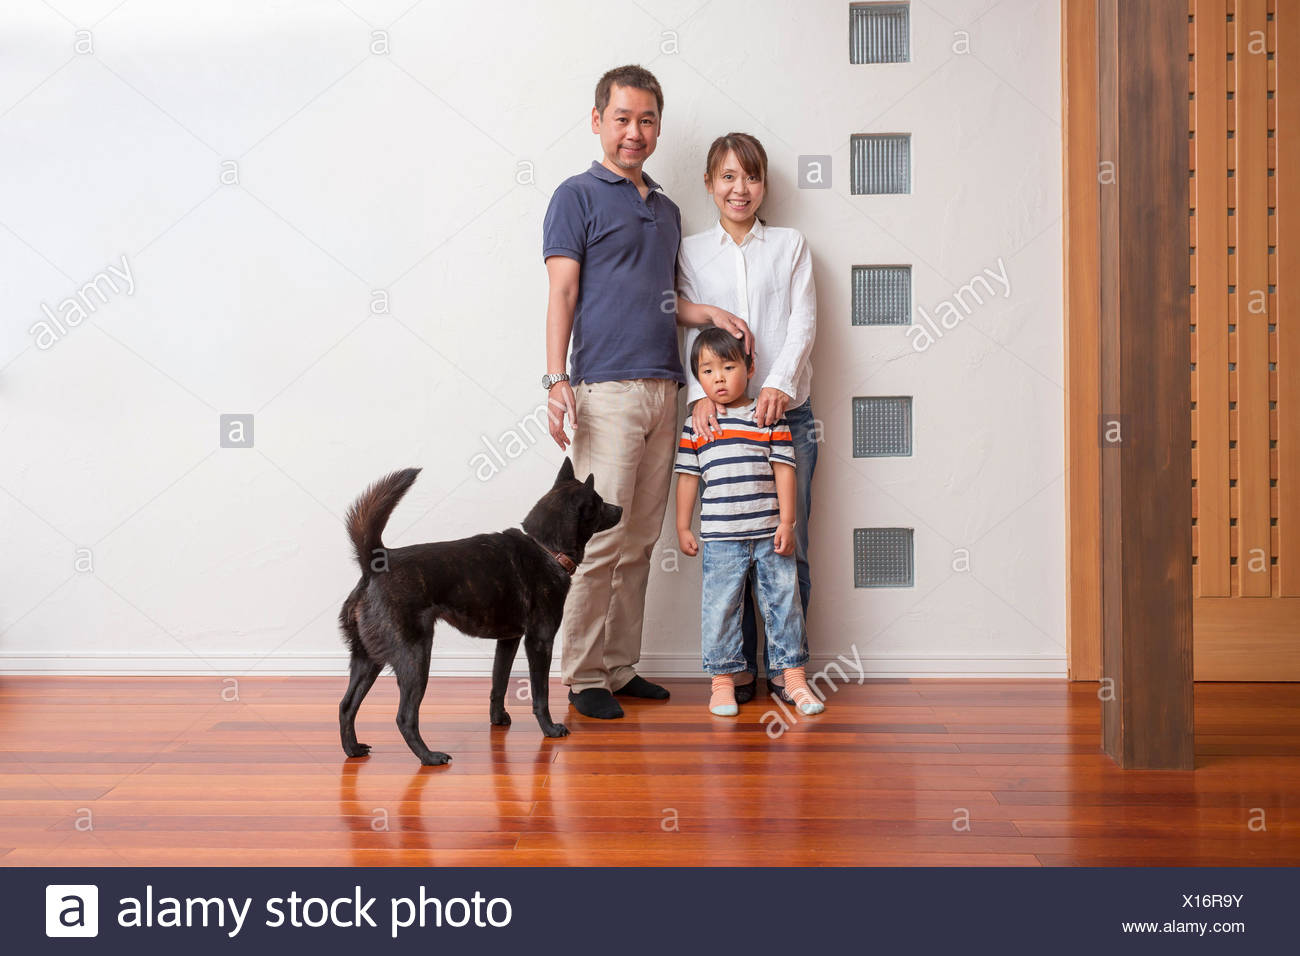 Family with young son and pet dog - Stock Image